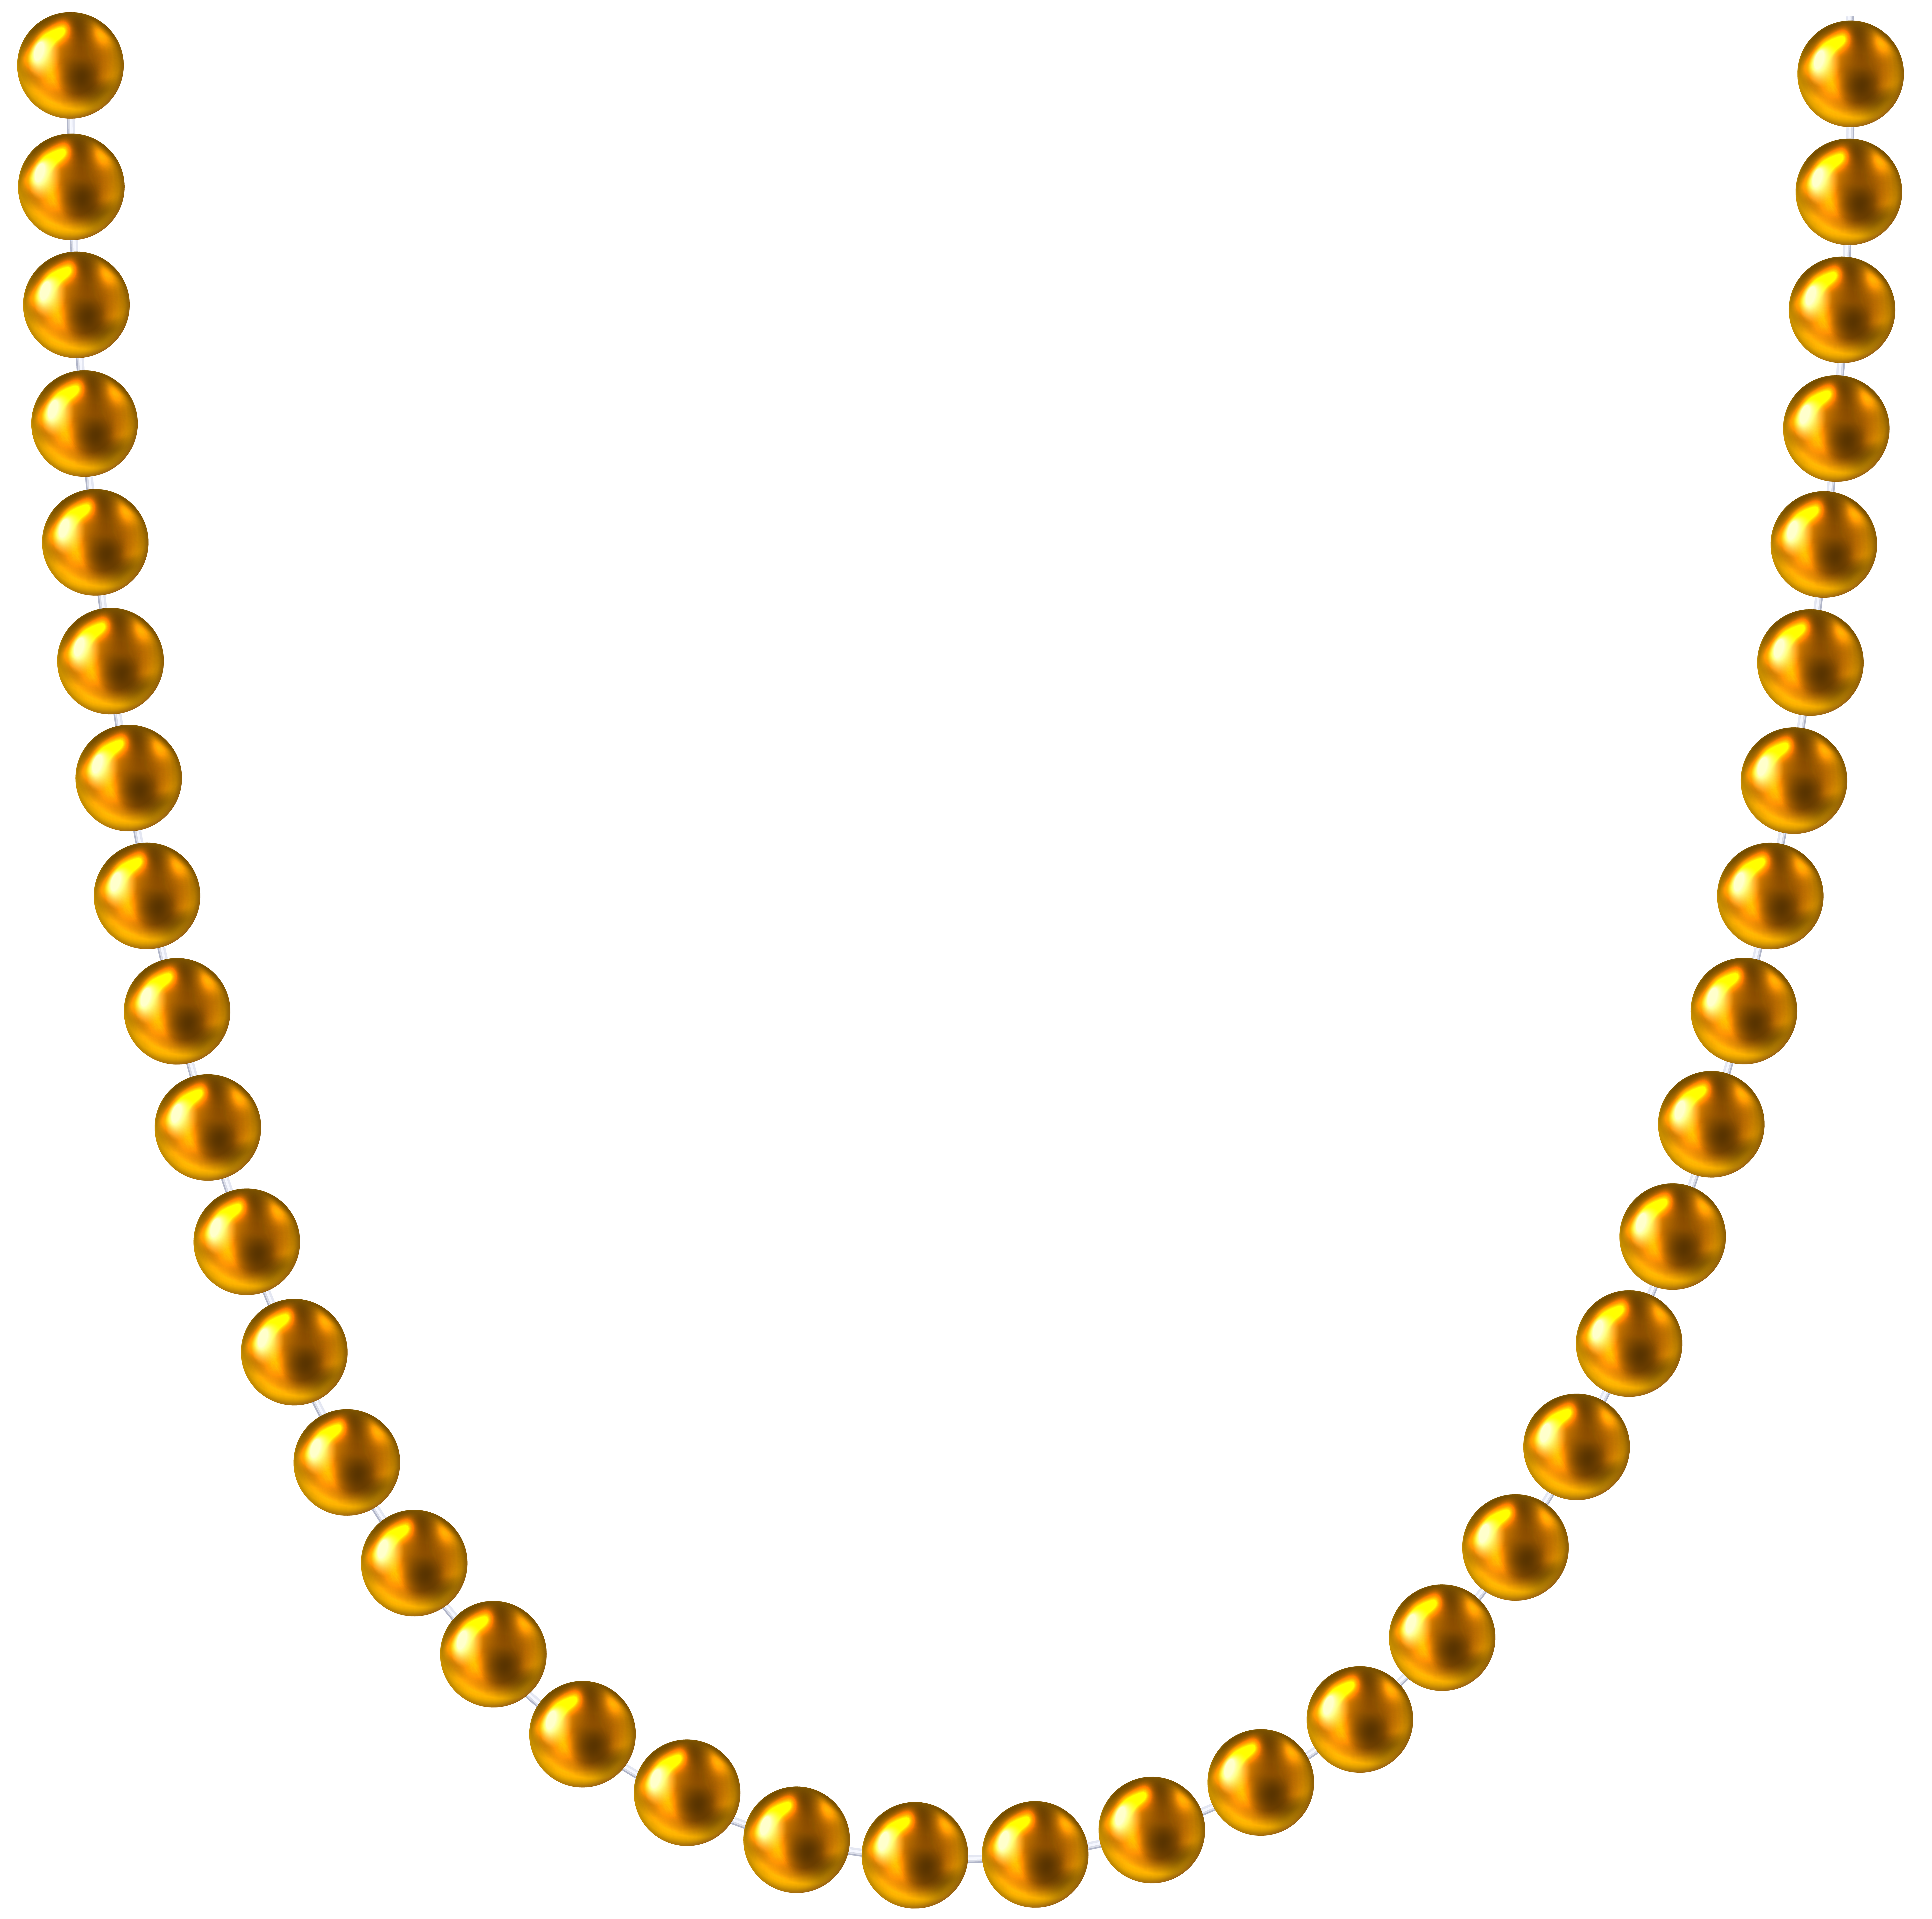 Gold Beads PNG Clip Art Image.